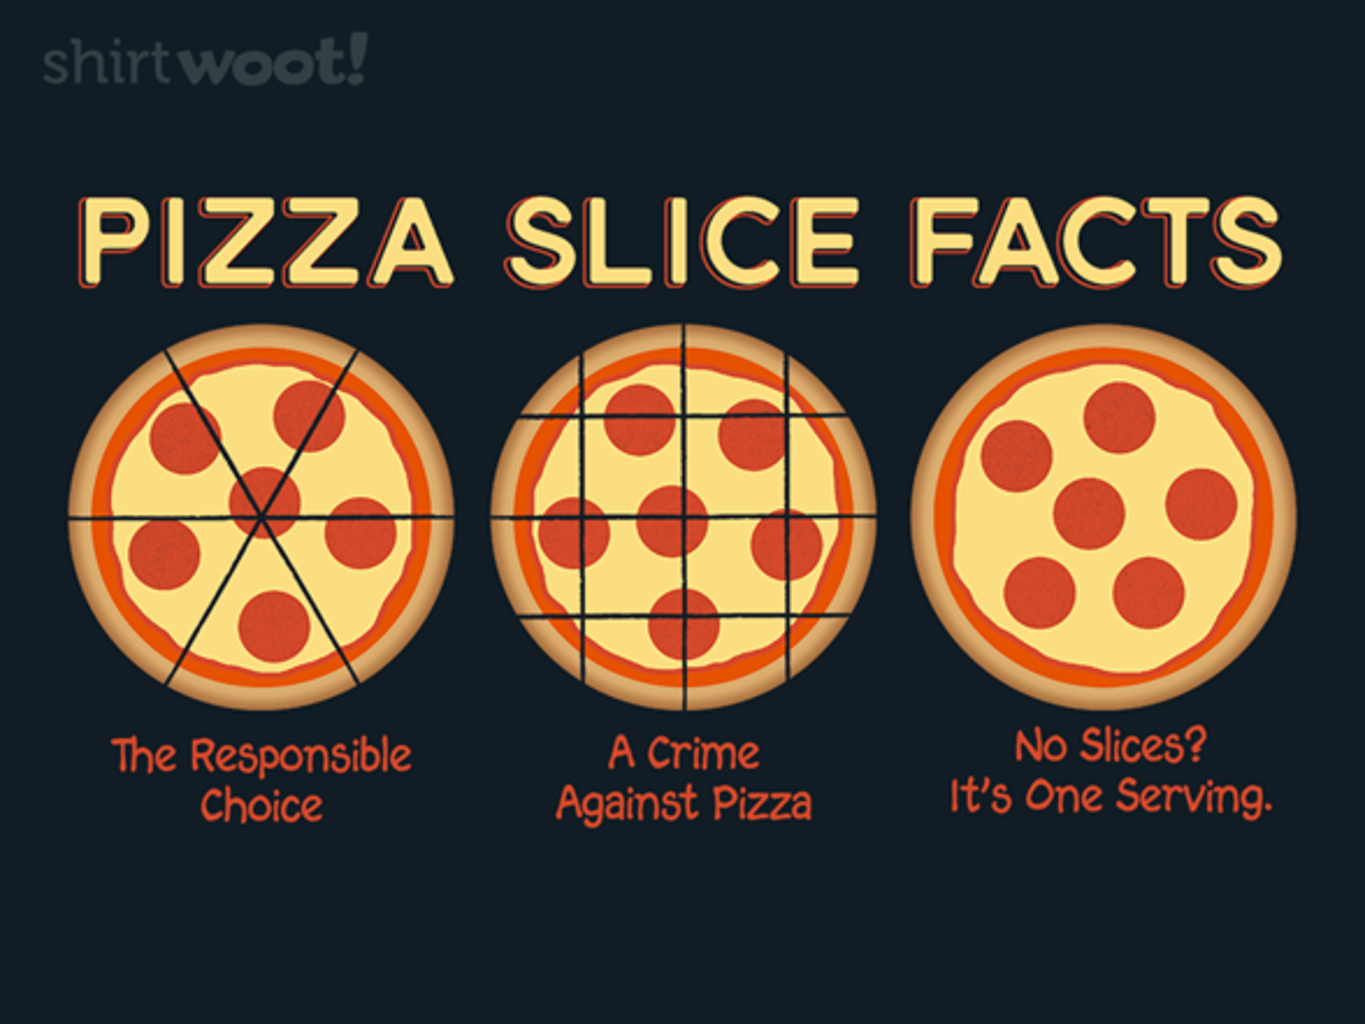 Woot!: How Do You Slice a Pizza?